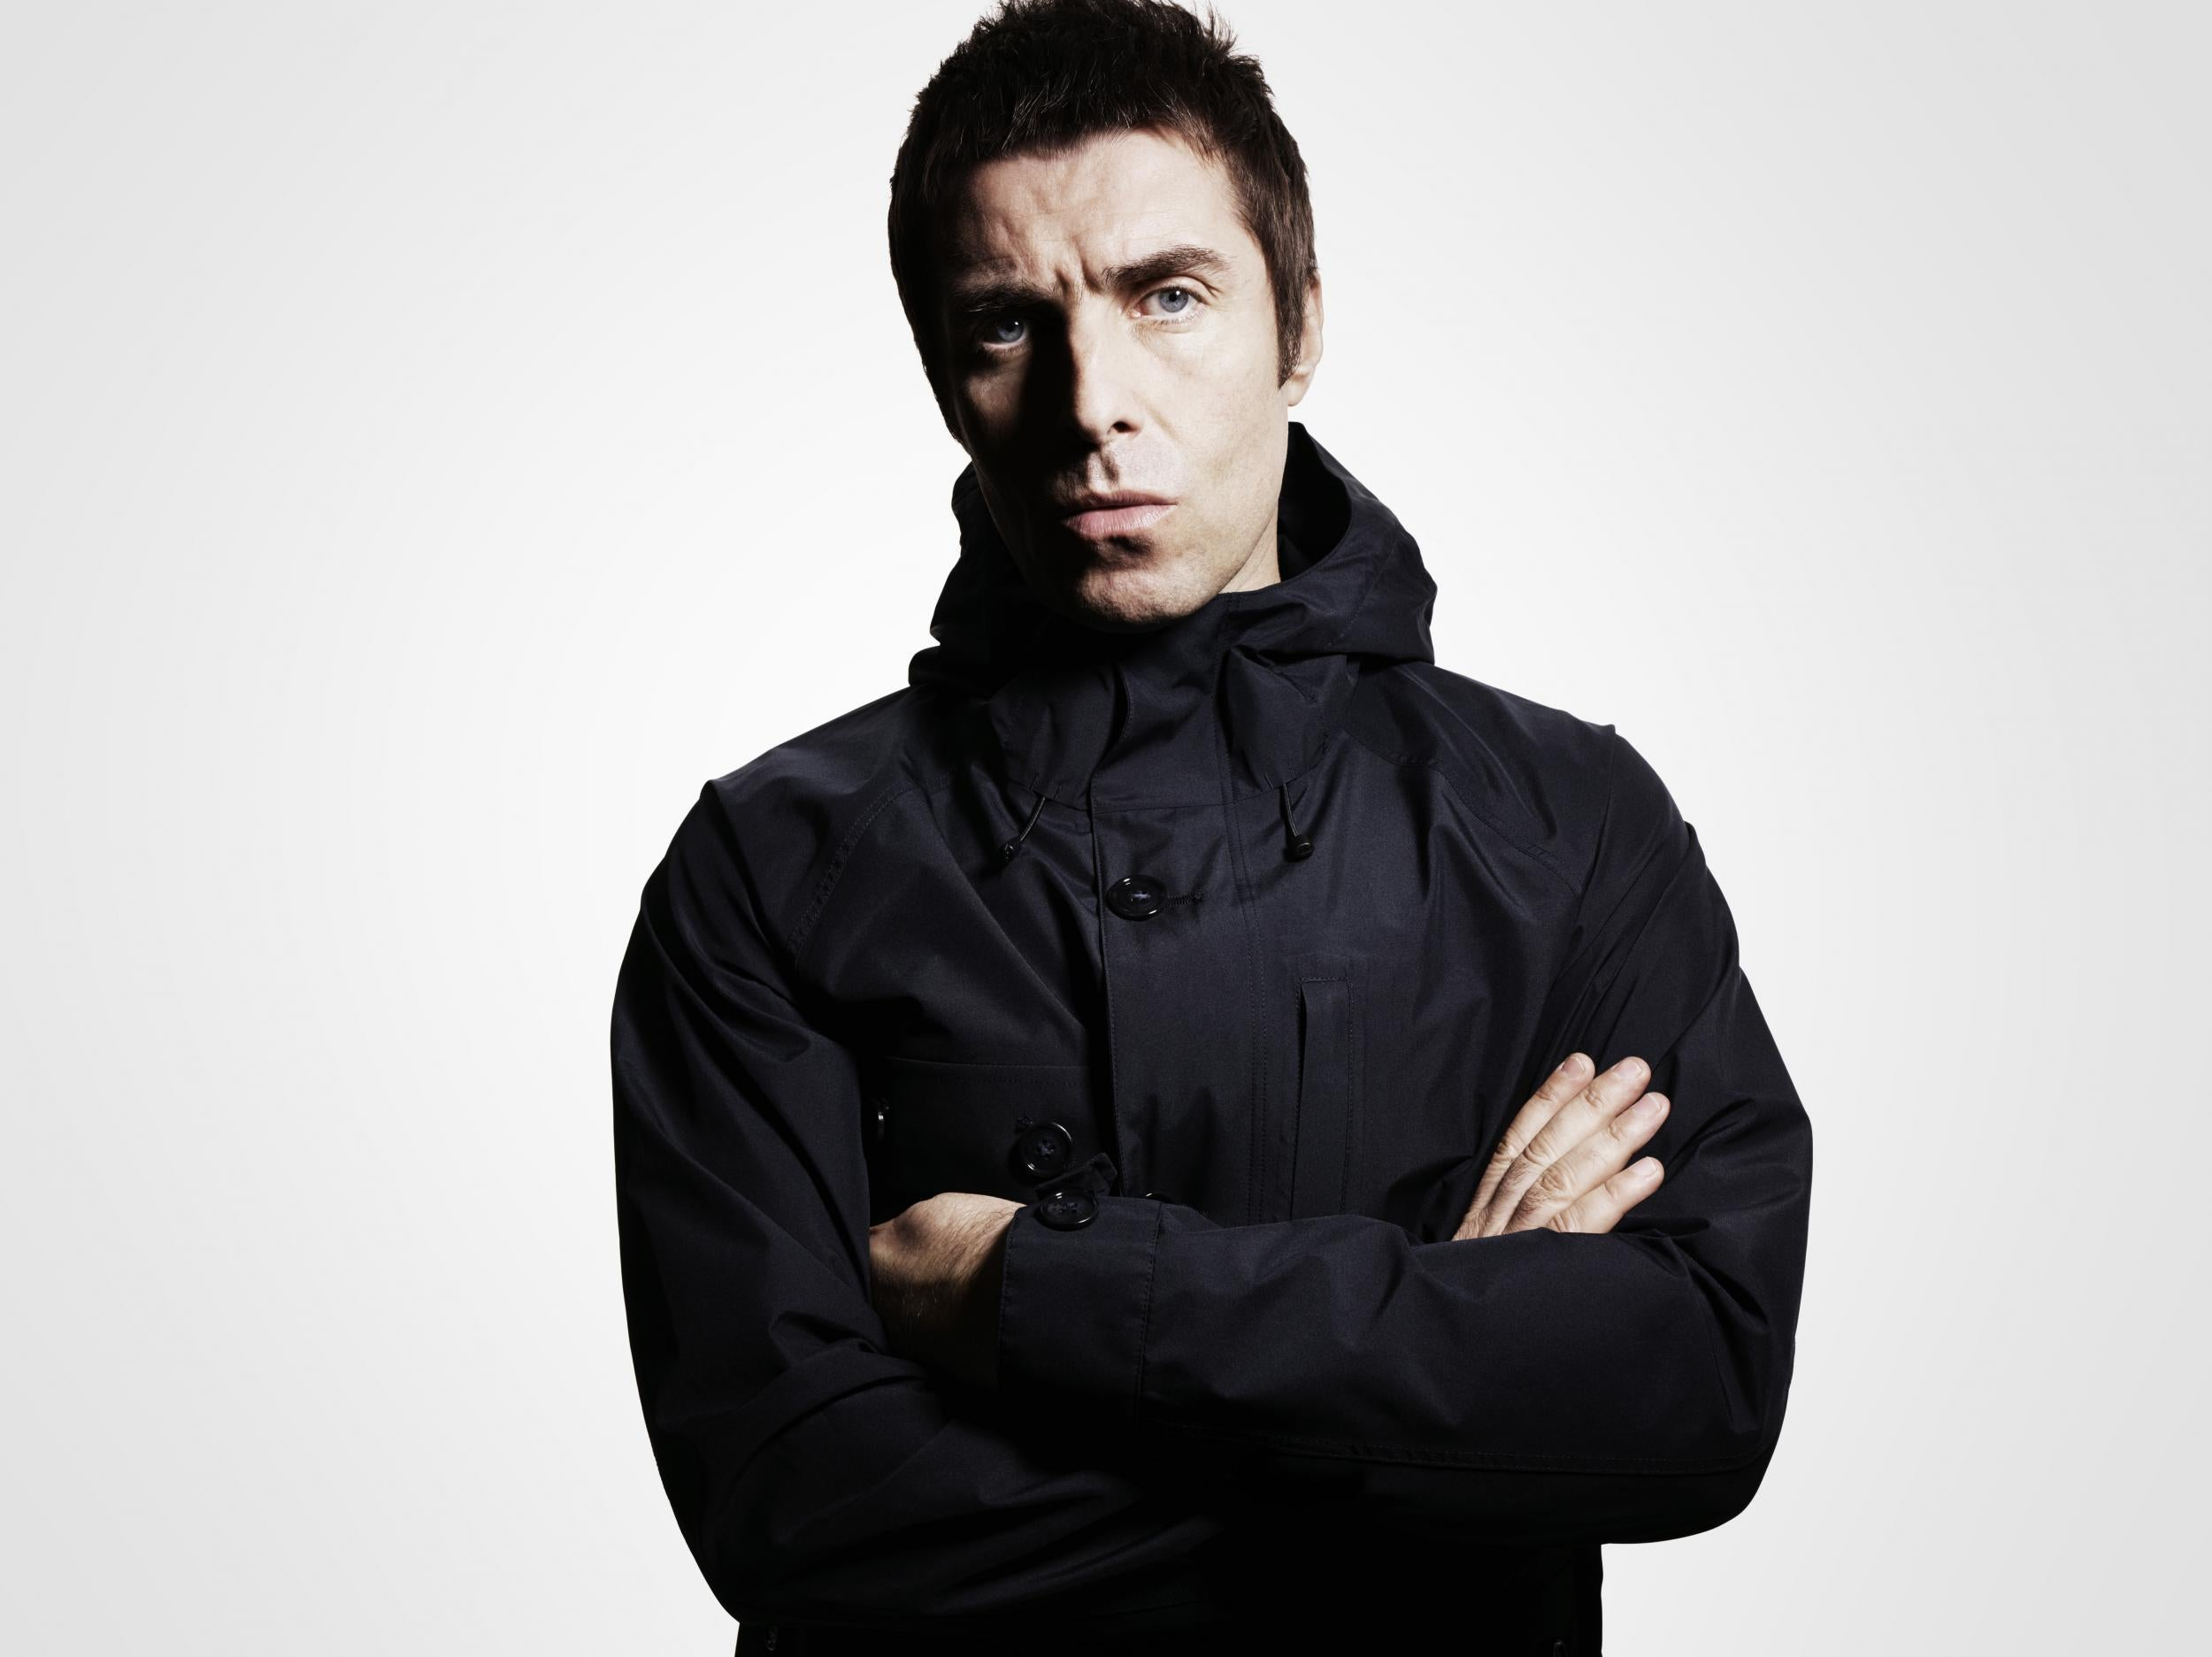 Liam Gallagher documentary 'As It Was' to screen at Cannes ...